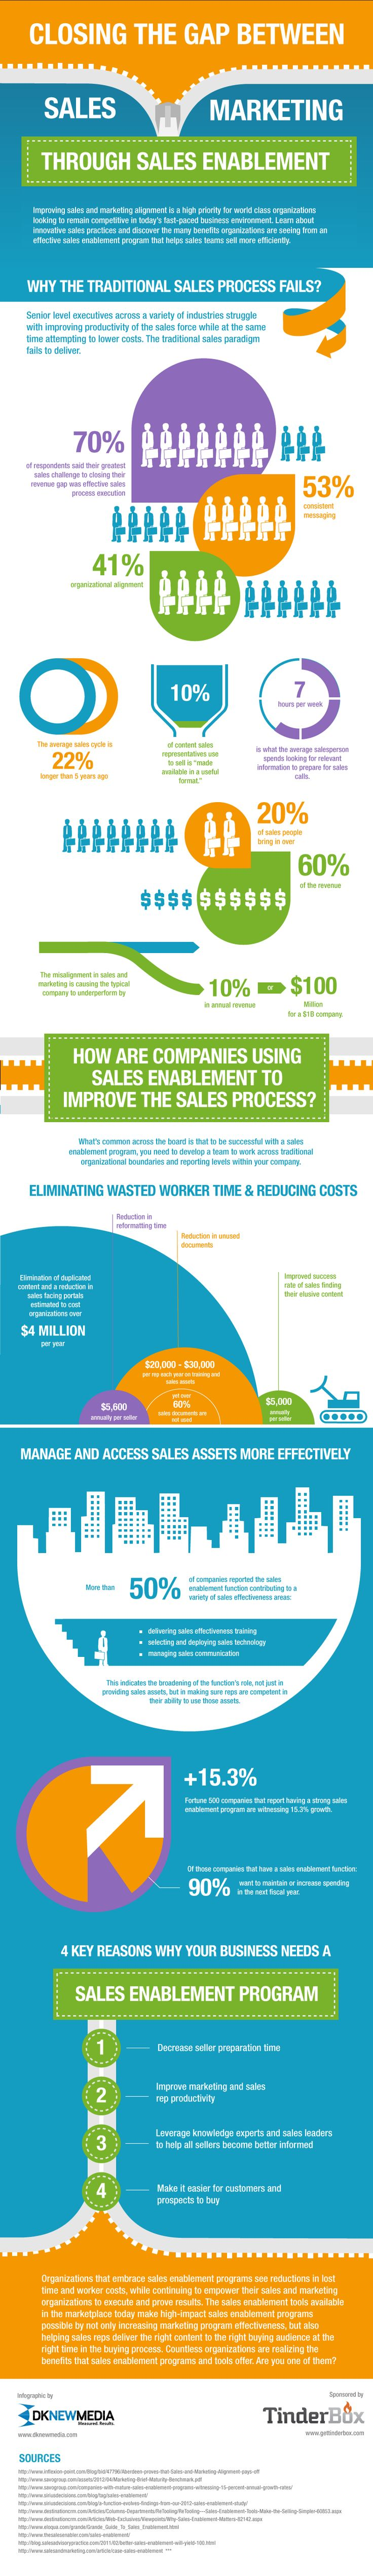 Why Does Sales Process Fail? Closing the Gap Between #Sales and #Marketing #infographic